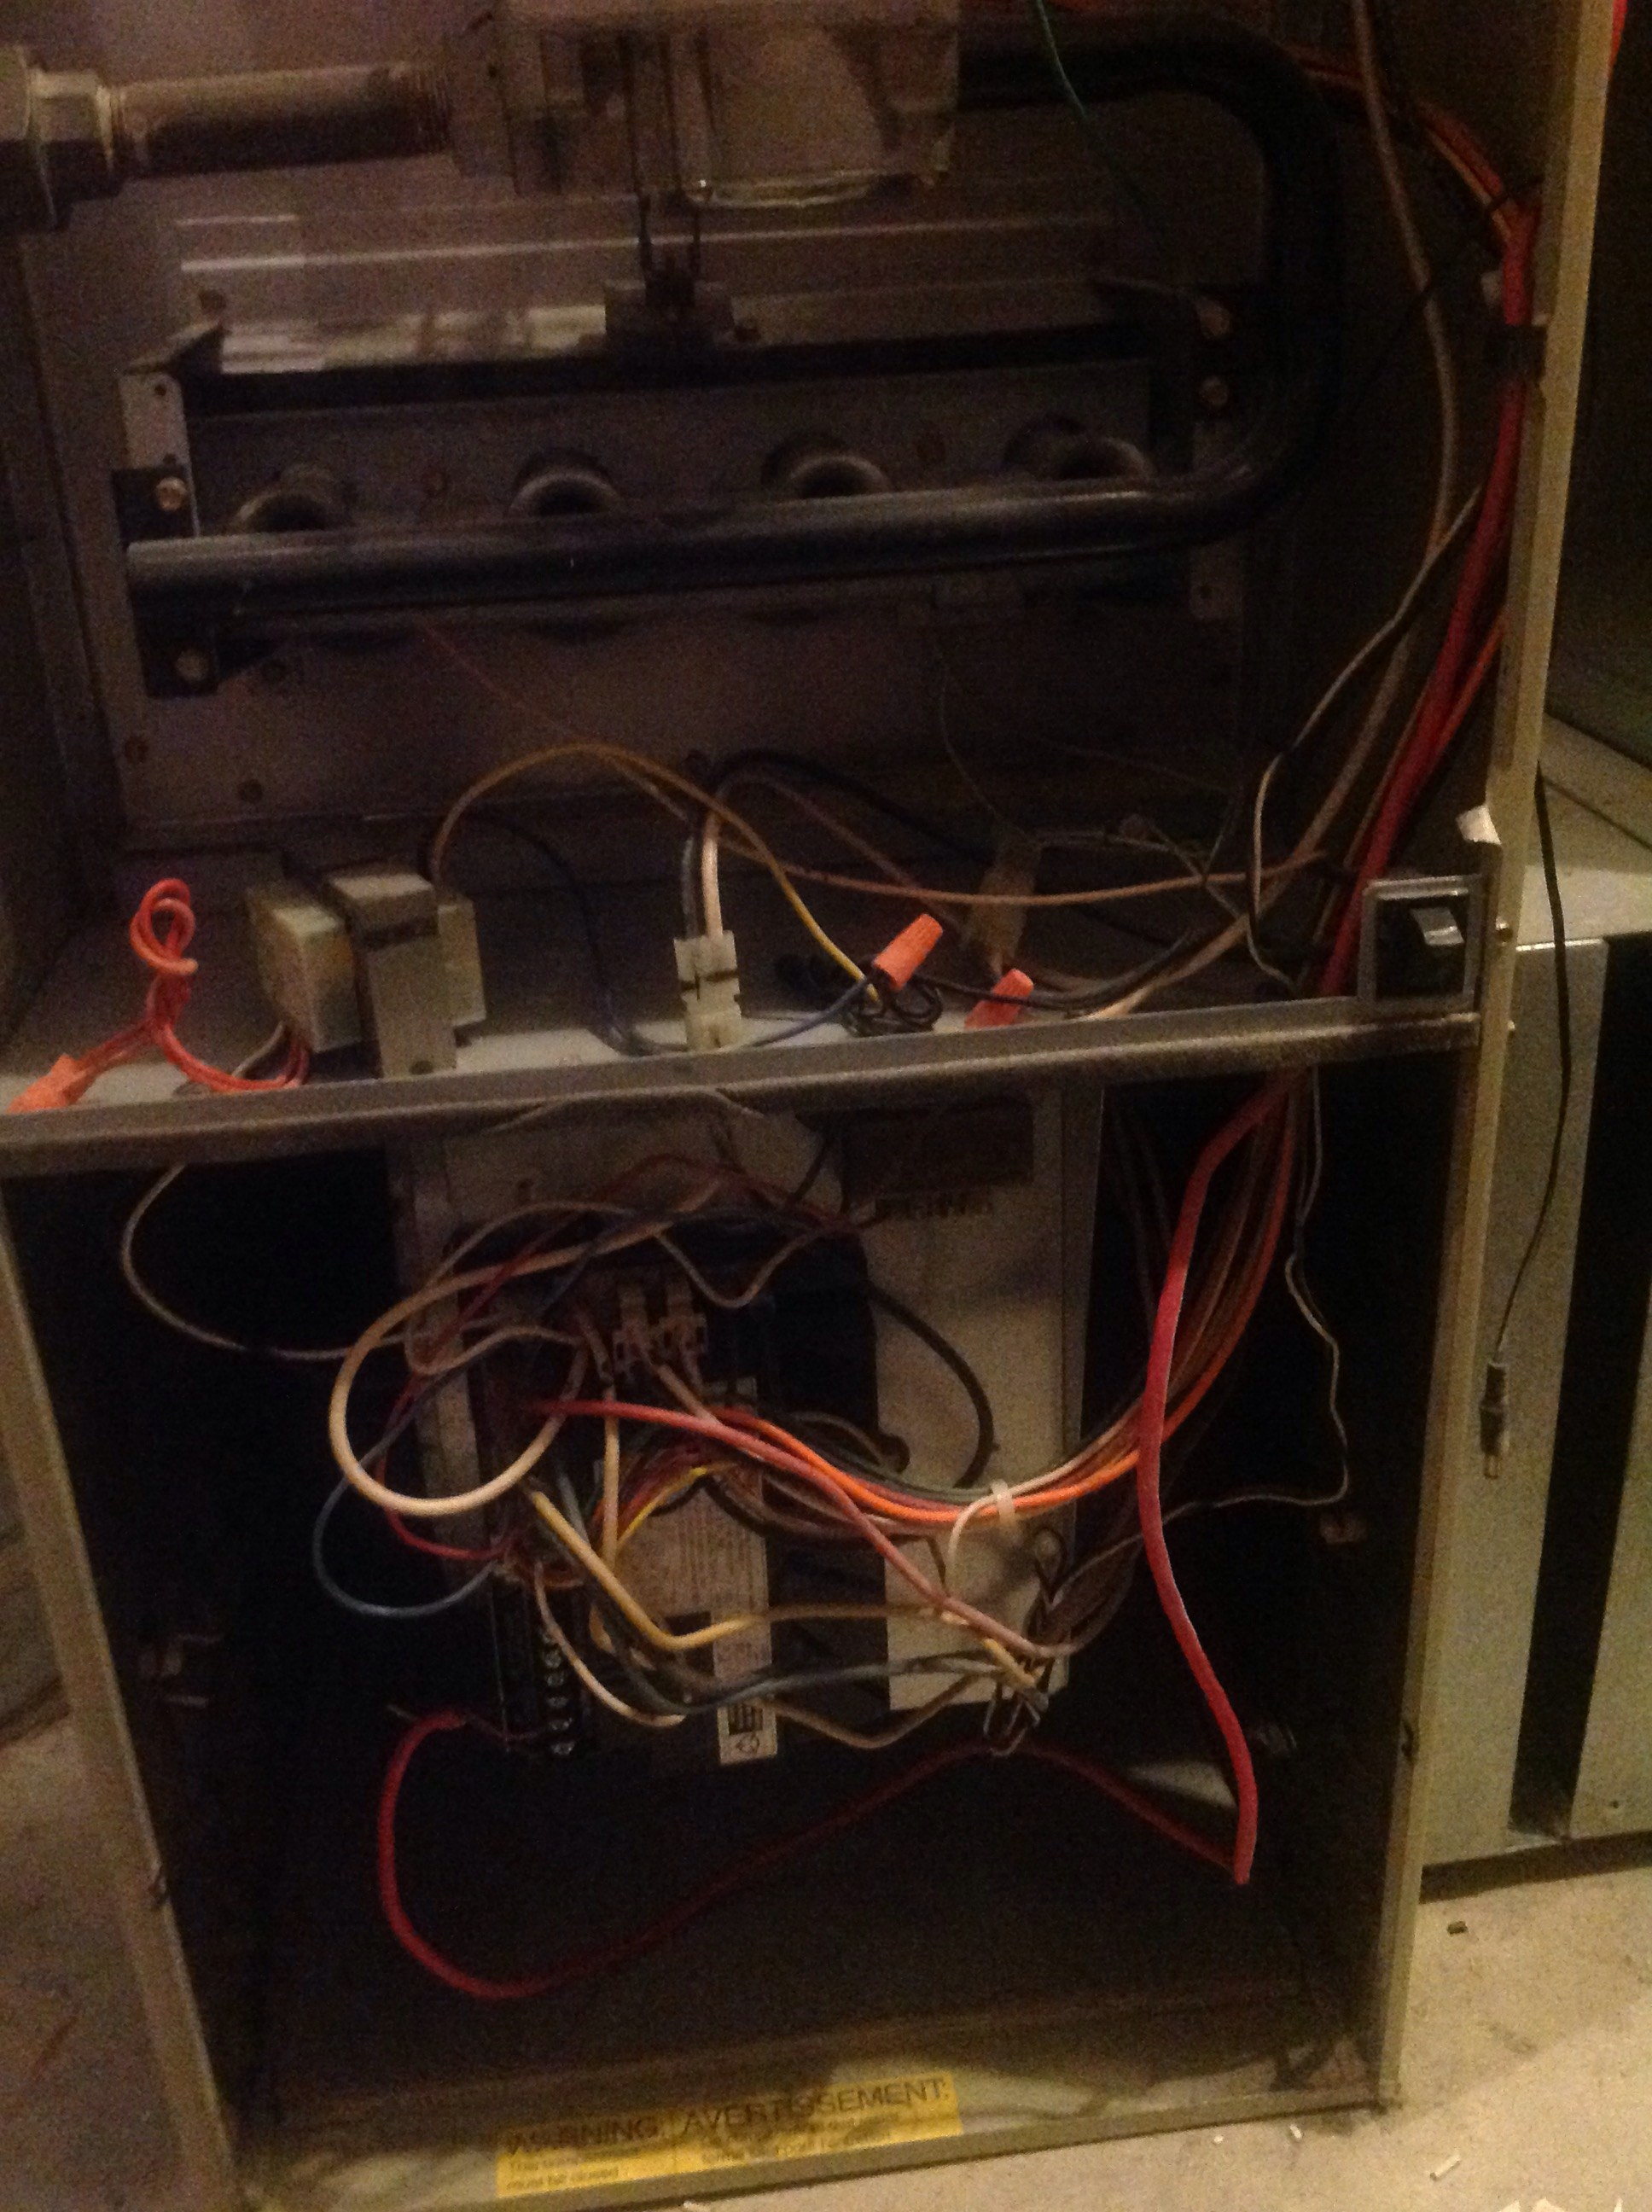 furnace blower humming when off 12v 30a relay 4 pin wiring diagram how to inspect hvac systems course page 562 internachi